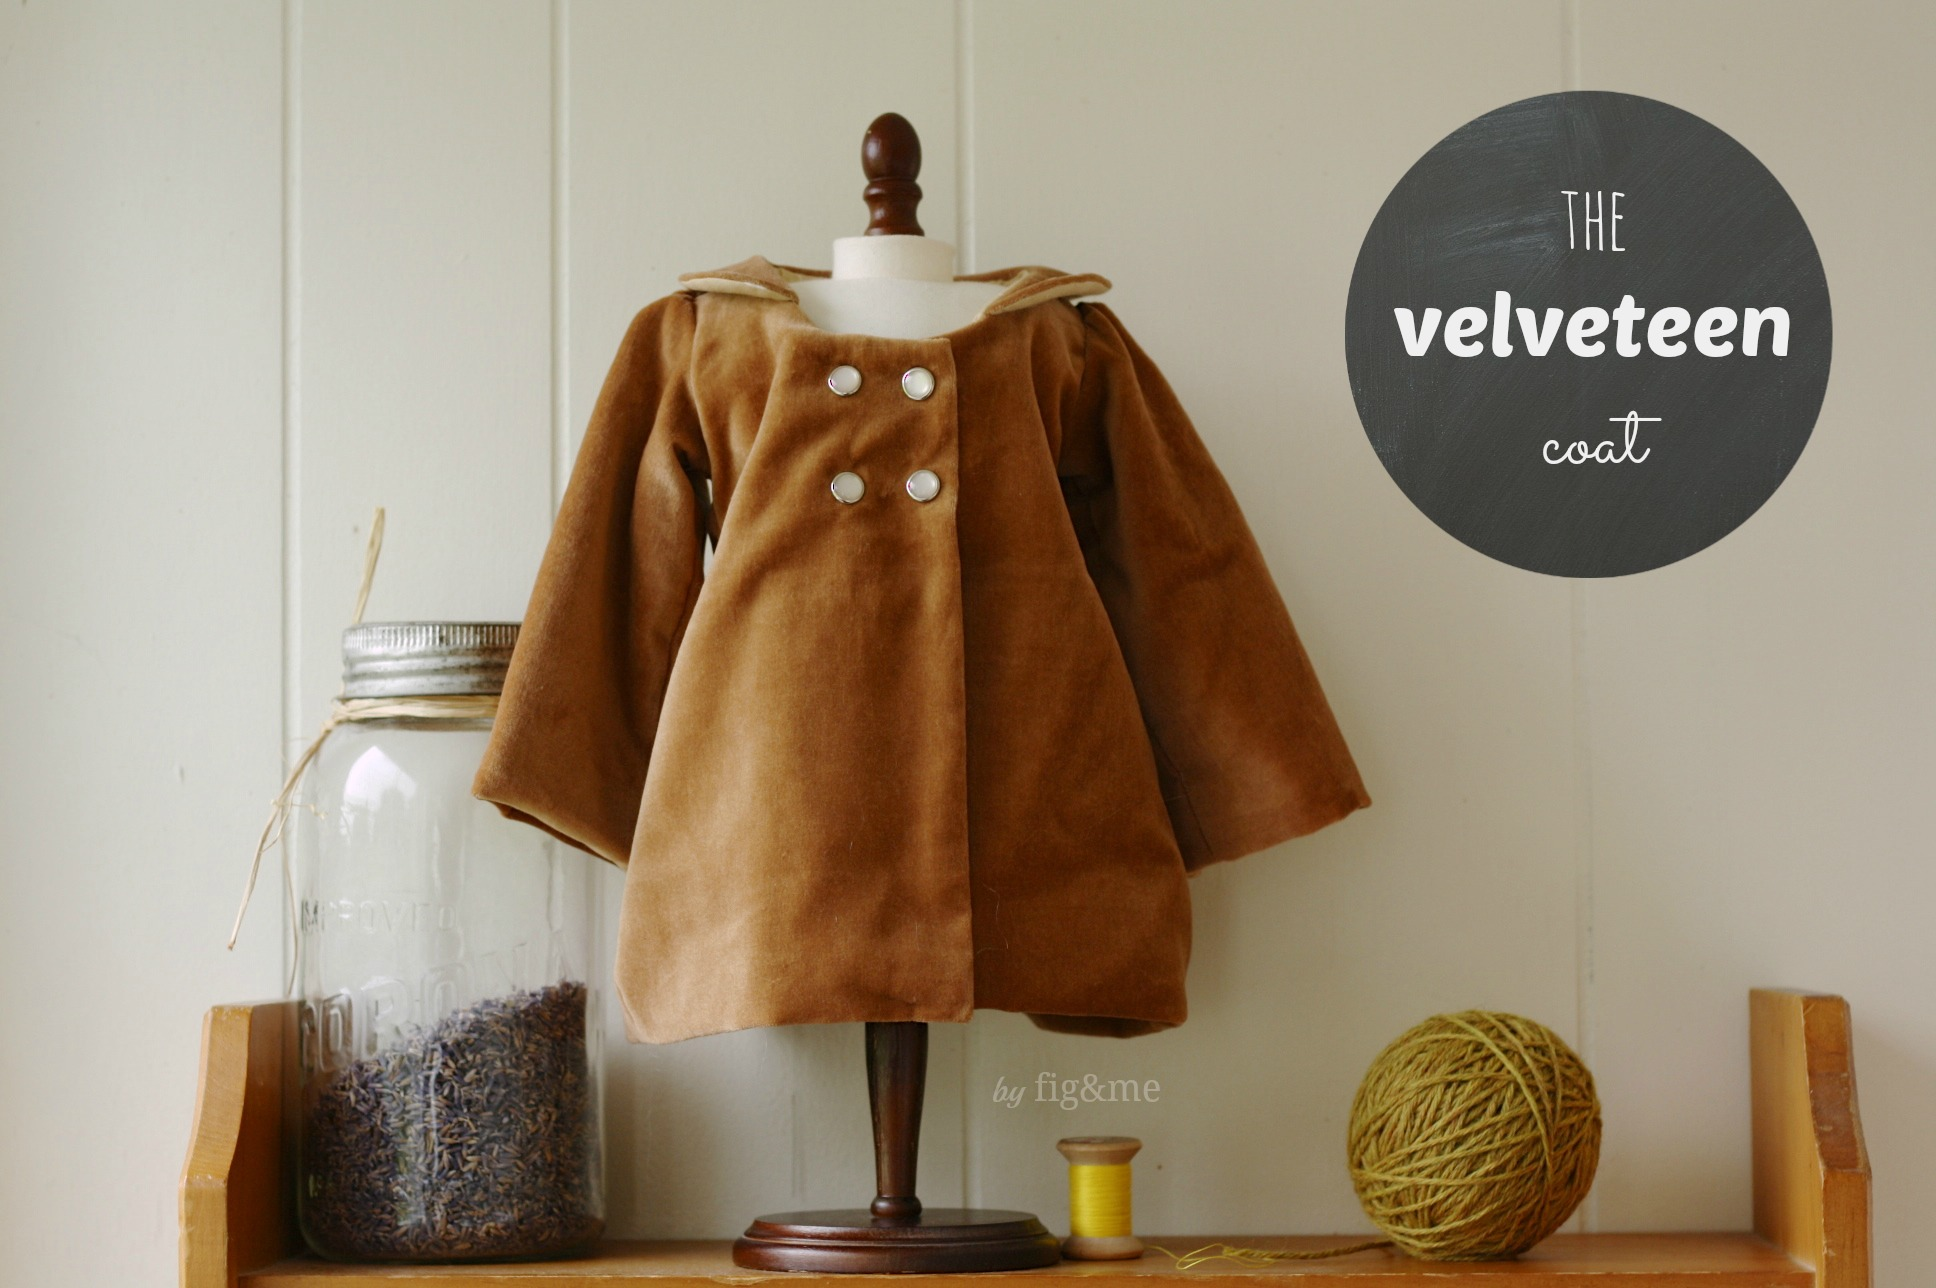 the velveteen coat, by fig and me.